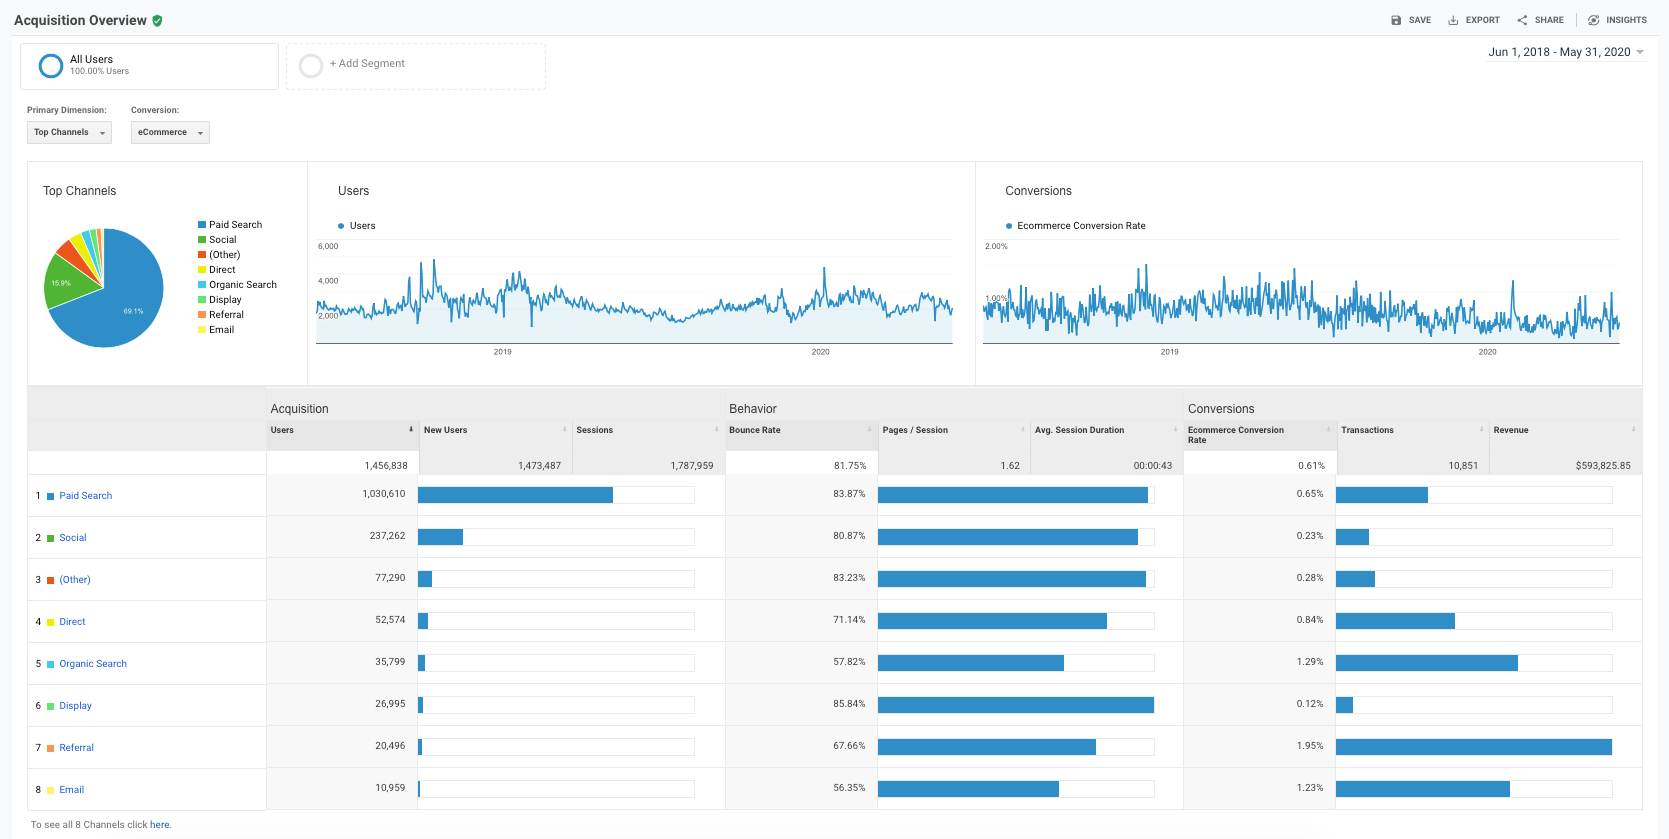 Google Analytics Acquisition Overview Report - June 2018 - May 2020